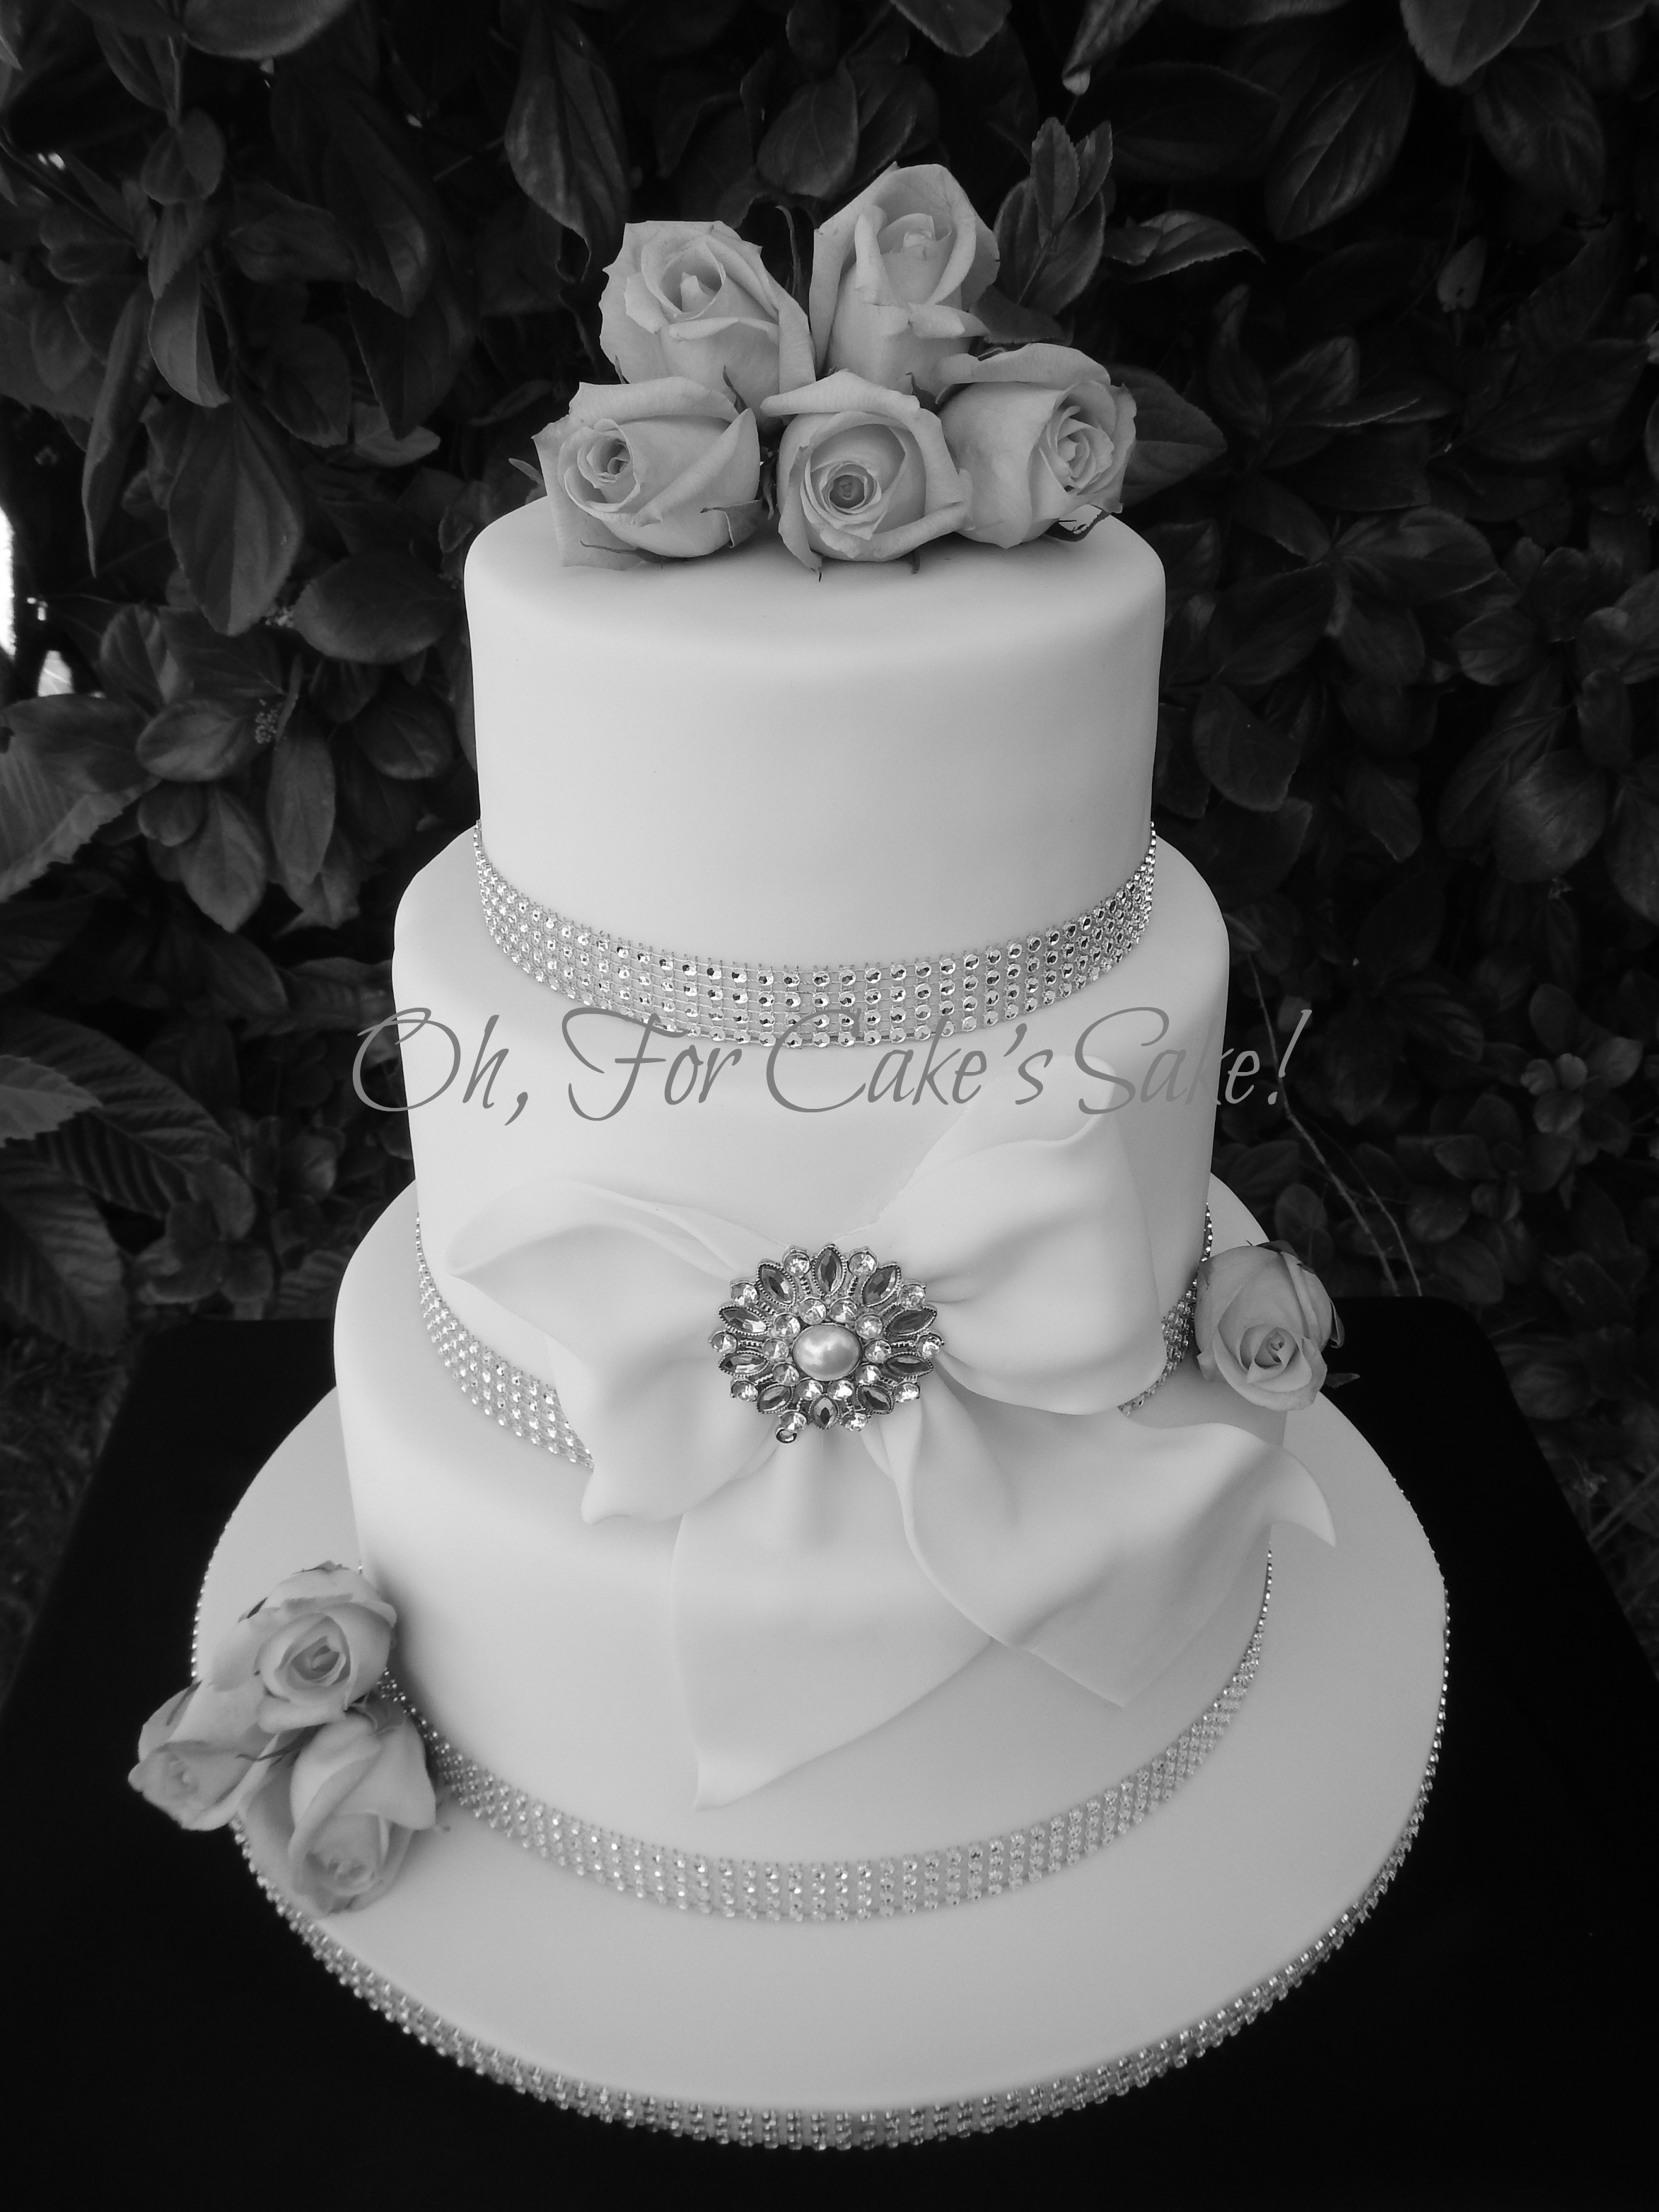 Romantic New Years Wedding Cake Cakecentral Com